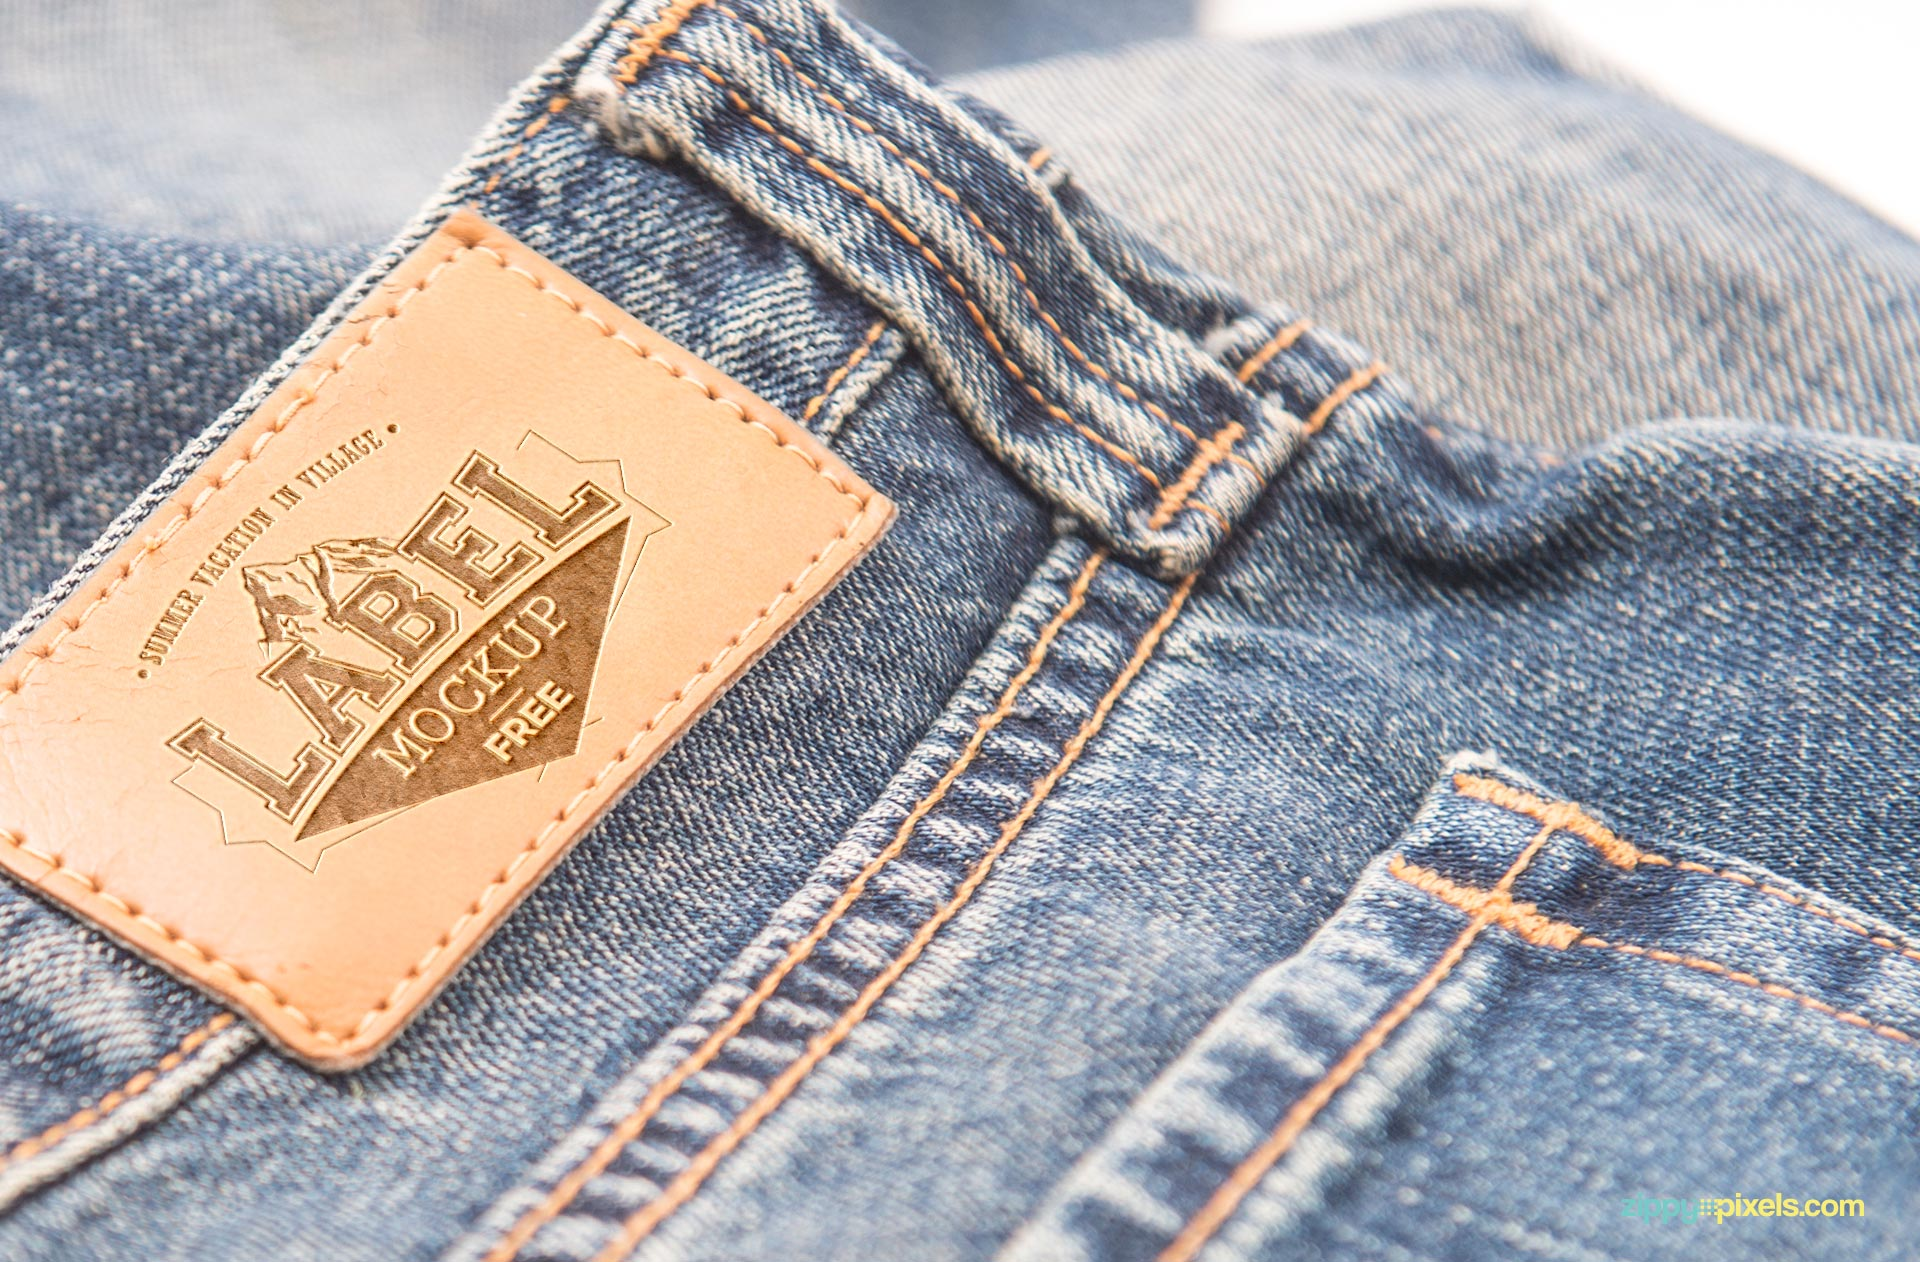 Zoom in view of the free jeans label mockup.